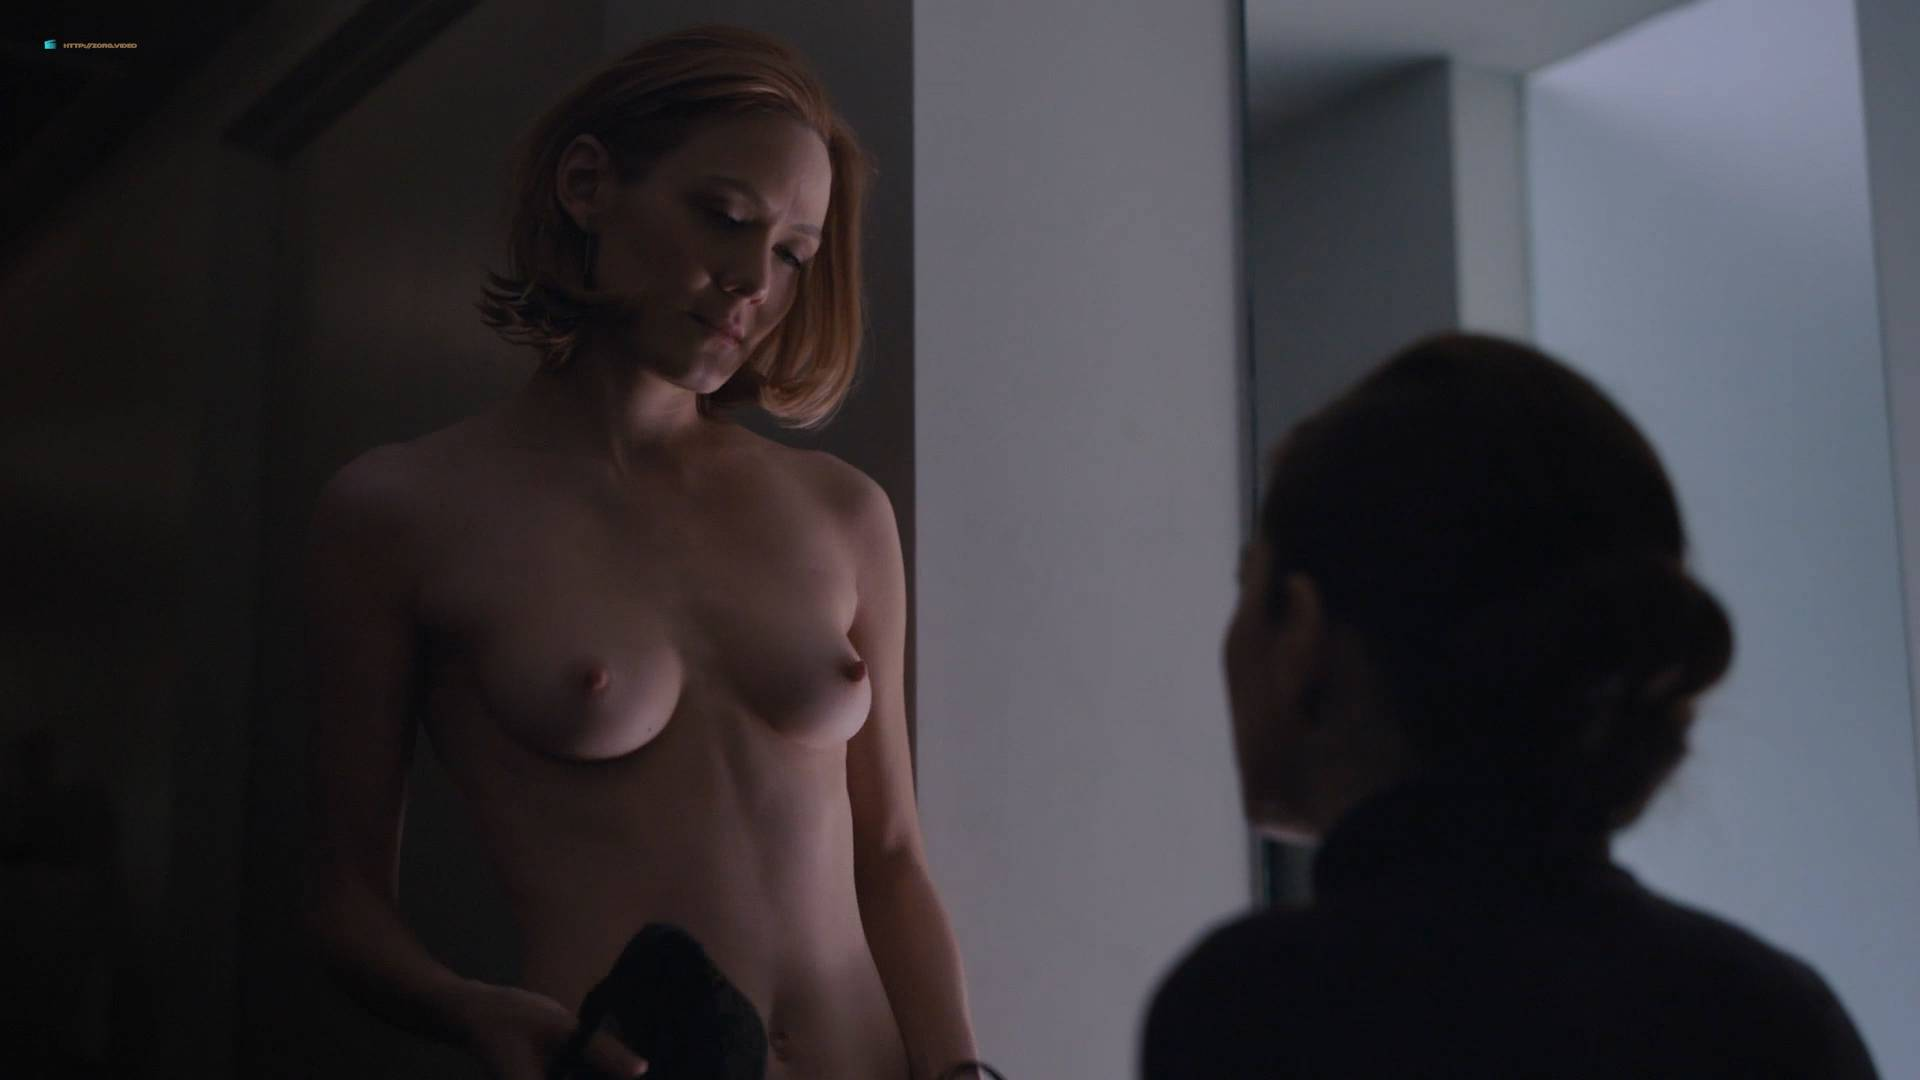 Anna Friel nude and lesbian sex with Louisa Krause - The Girlfriend Experience (2017) s2e3 HD 1080p Web (12)